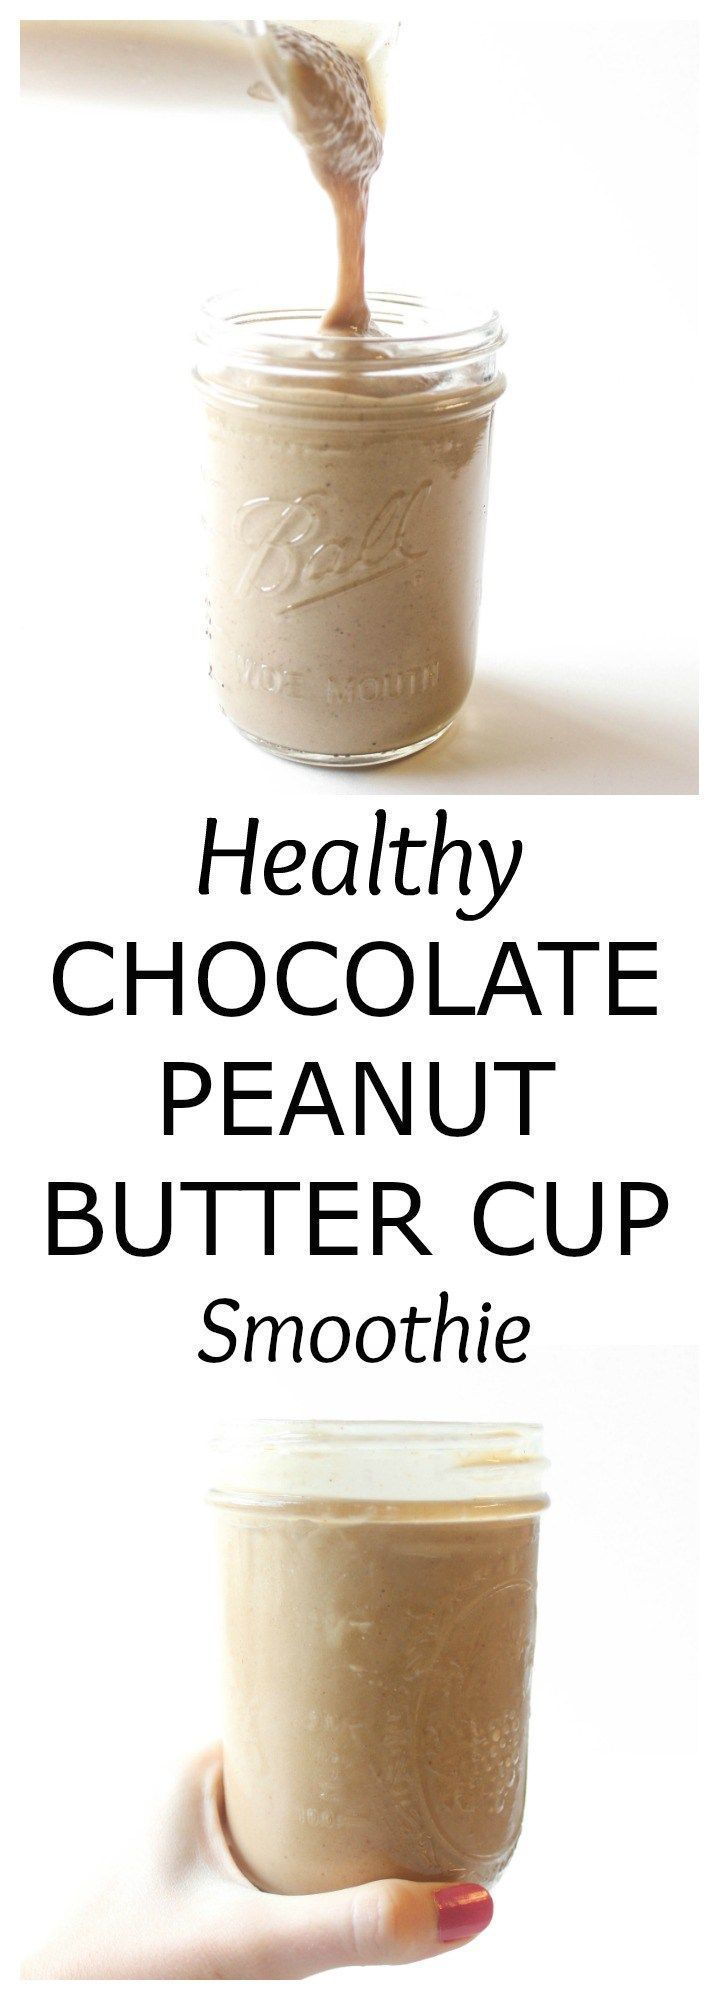 This post is sponsored by OLLY Nutrition but the text, recipe, & opinions about peanut butter + chocolate are all mine  I've always loved the chocolate + peanut butter combo. At the end of every night of trick-or-treating growing up, I'd trade my Snickers, Kit Kats, Milky Ways, Crunch Bars, and Baby Ruths for as many Reese's cups as I could get my hands on. Not to mention